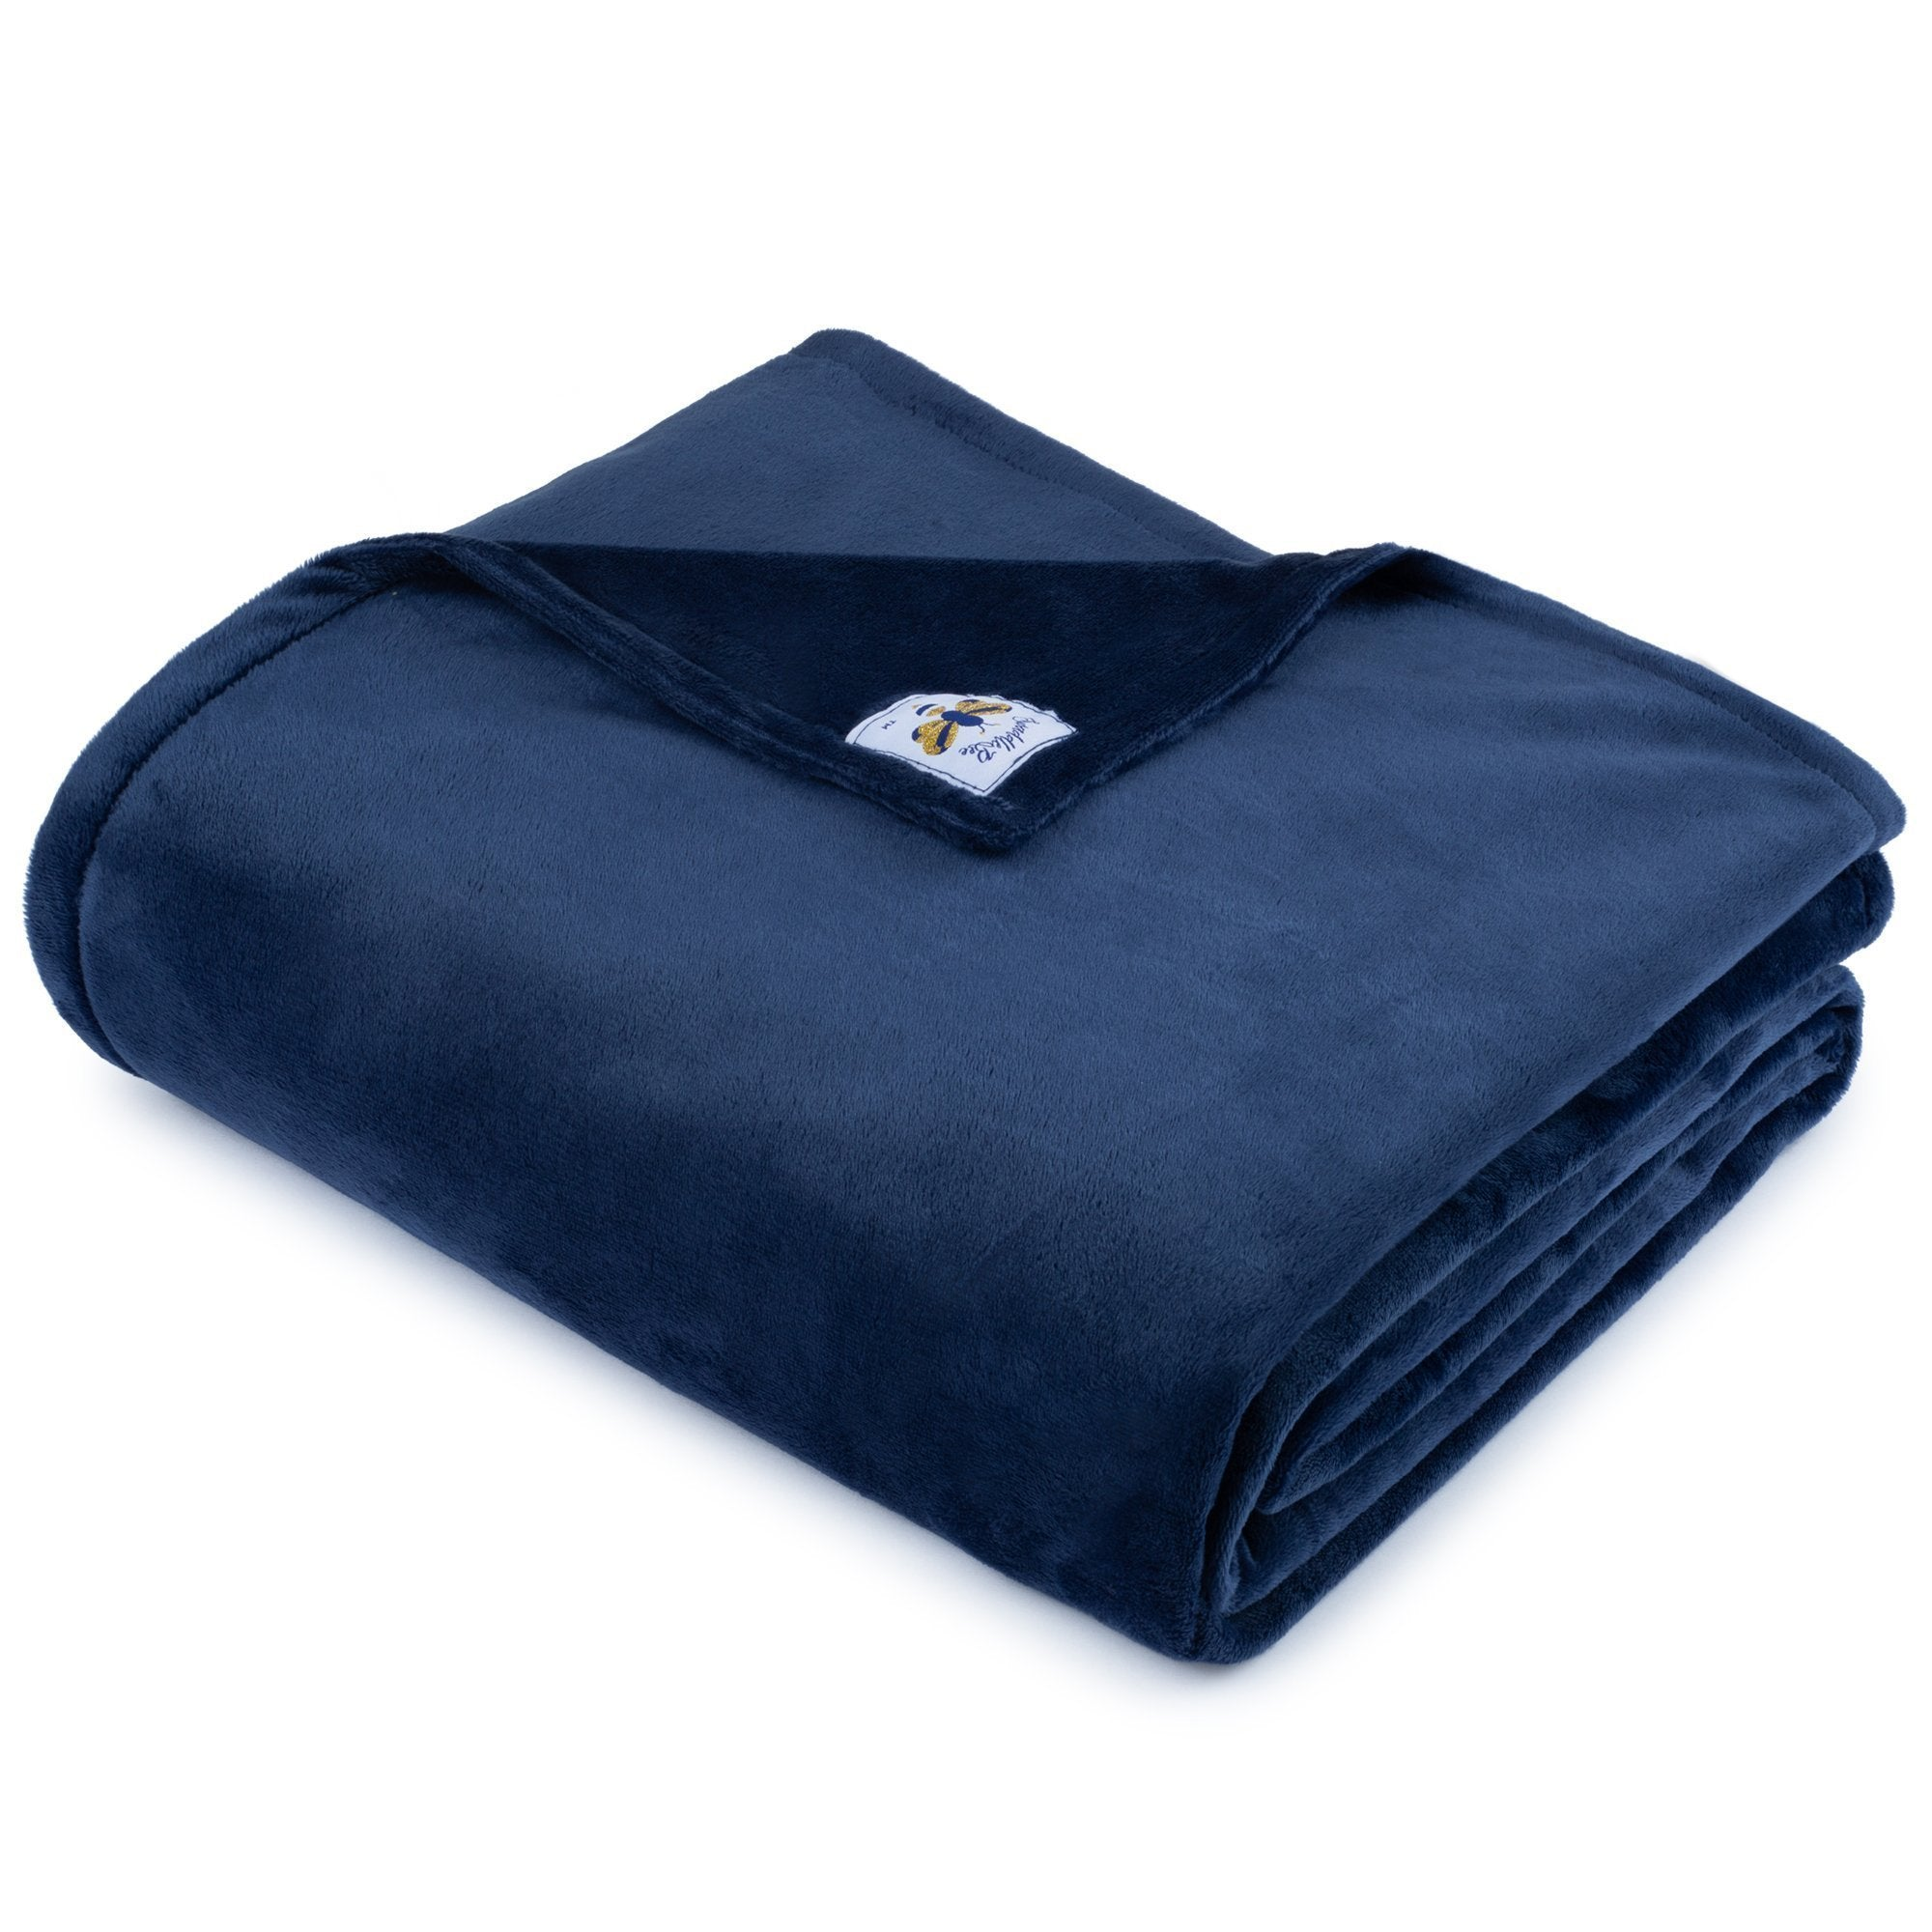 BiggerBee Minky Throw Blanket Solid Navy **IN STOCK**